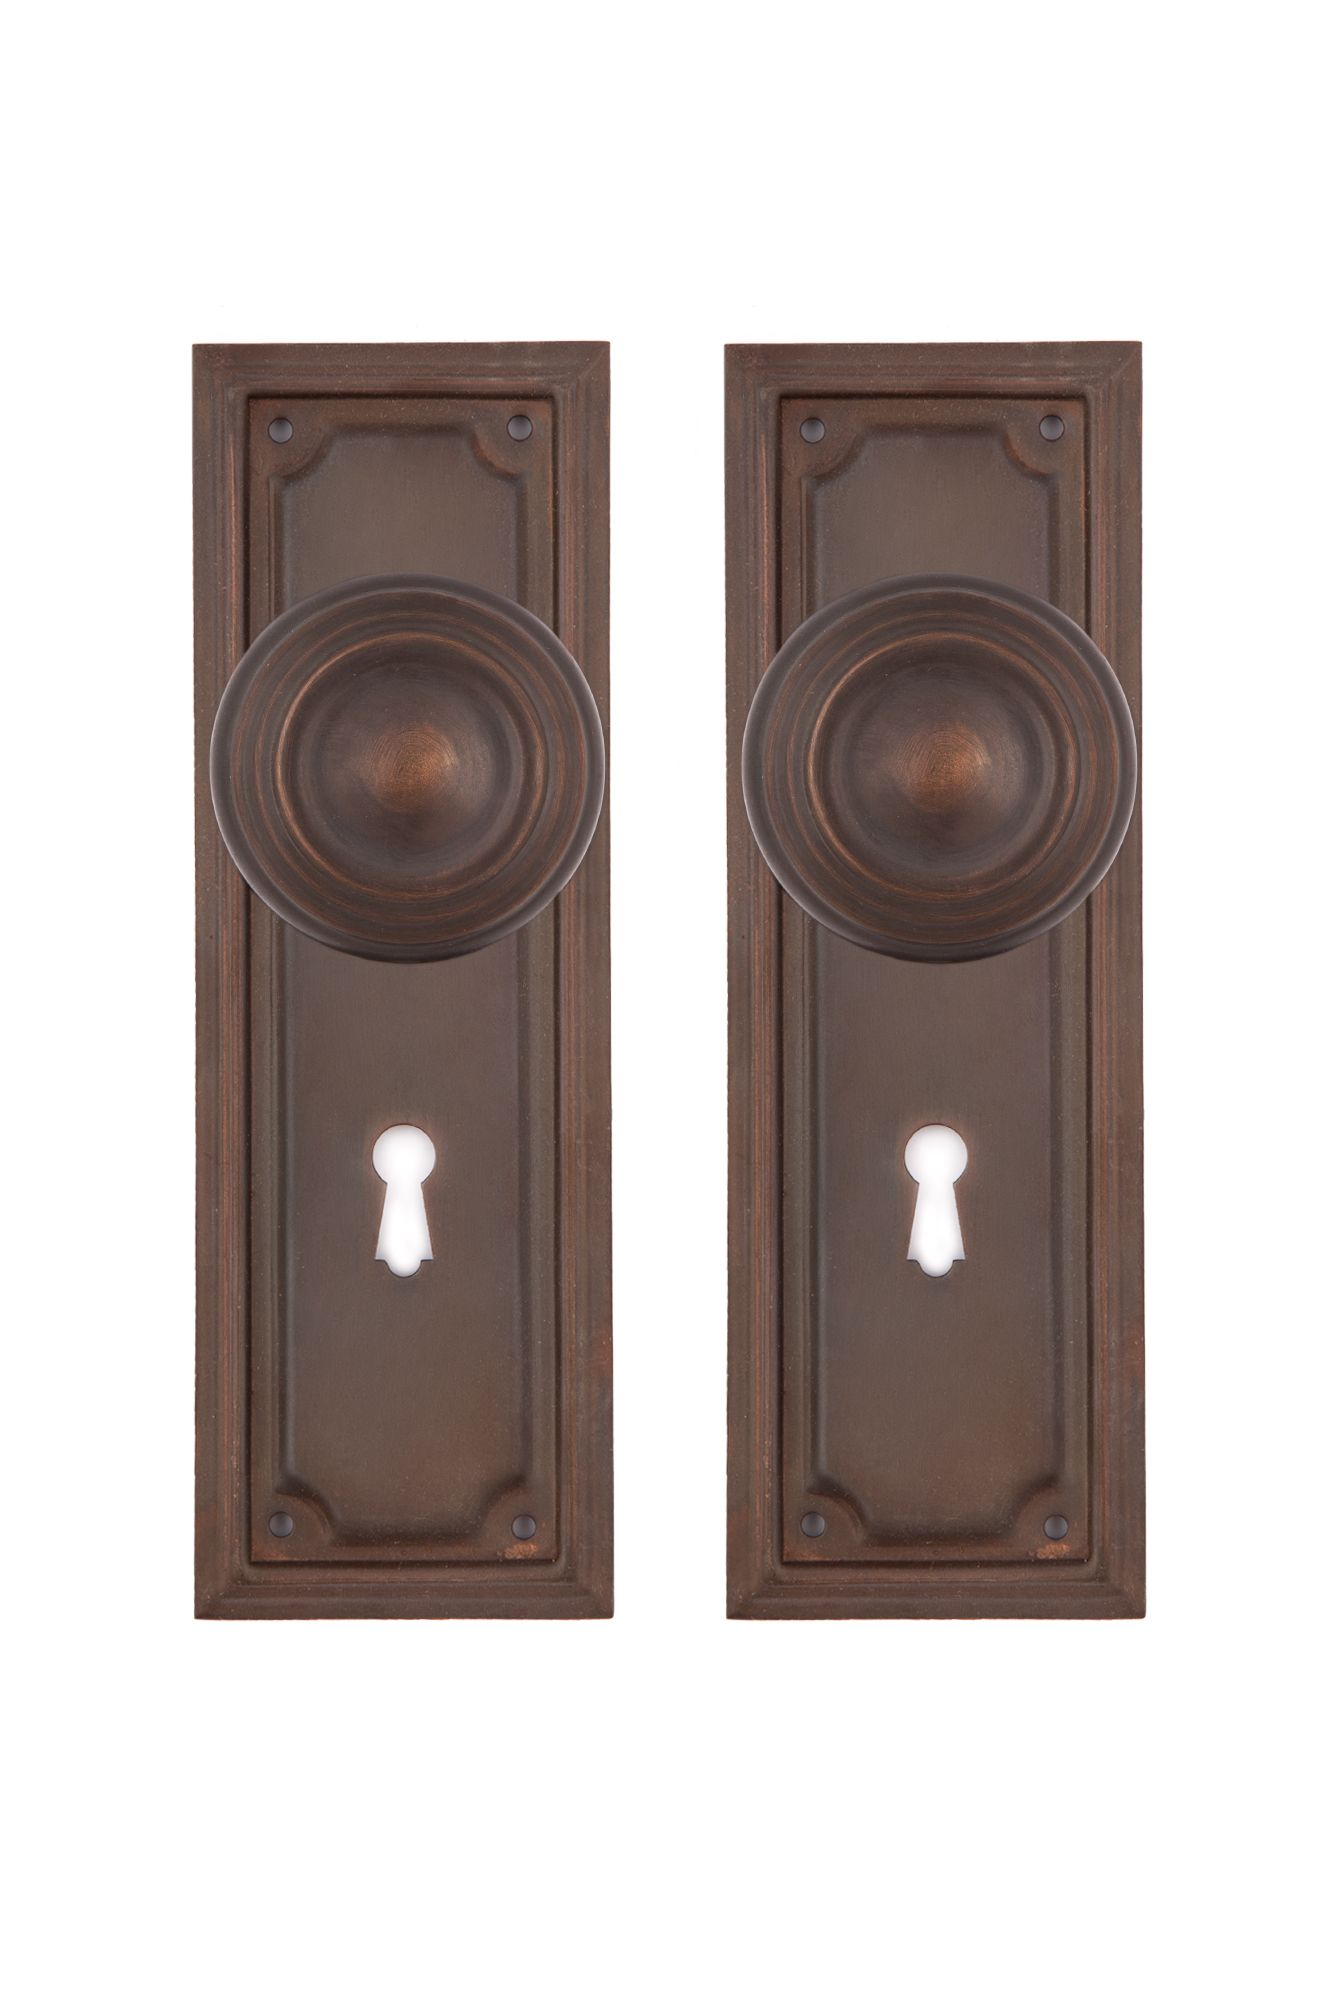 Bungalow Backplates For Doorknobs Huge Closeout Sale!!!!